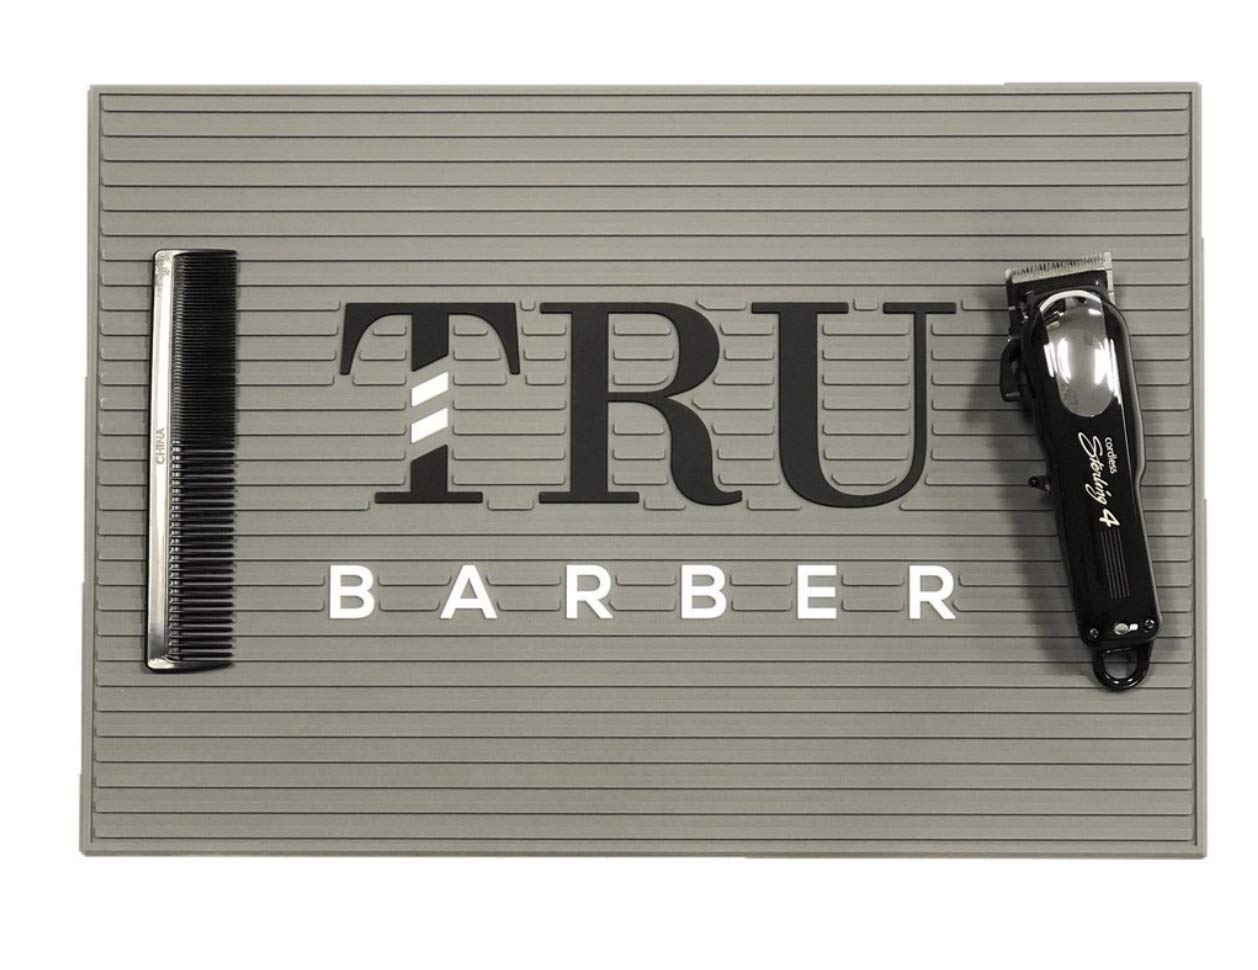 Tru Barber Mat 19 x 13 Flexible PVC Station Mat, Professional Mat, Salon and Barbershop work Station pads, Beauty salon tools hairstylist, Counter mat for clippers, Anti slip GREY